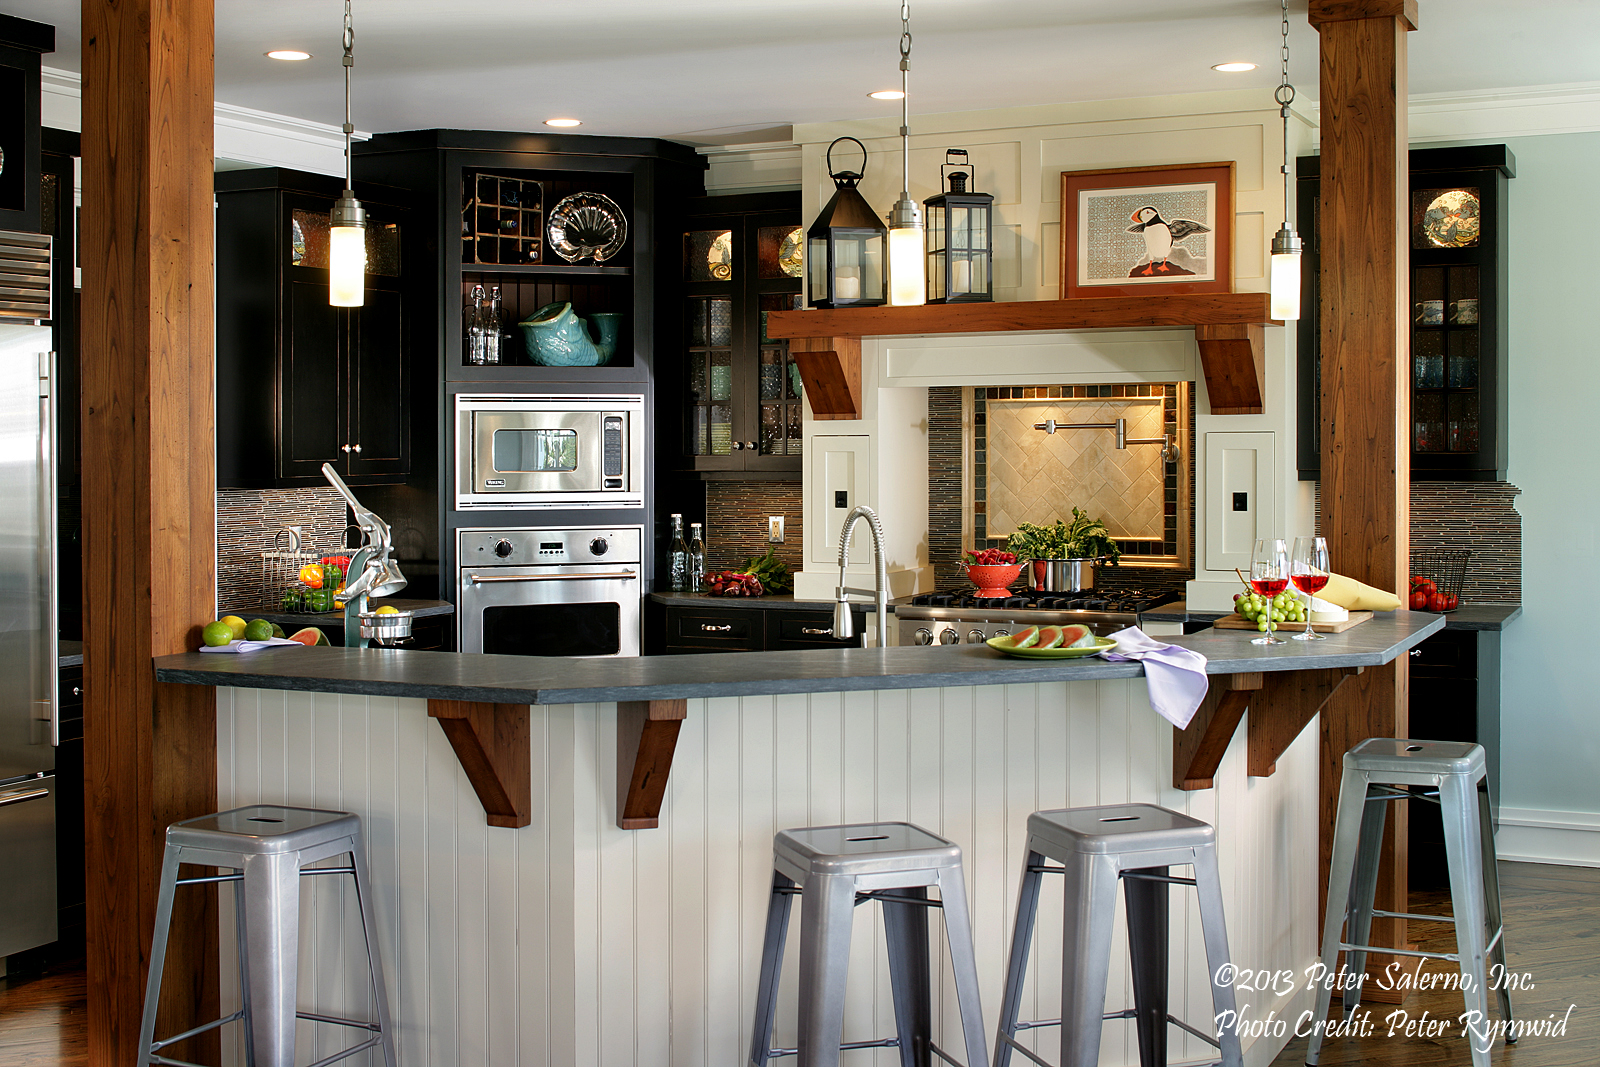 3 More Design Tips For Beautiful Summer Kitchens Peter